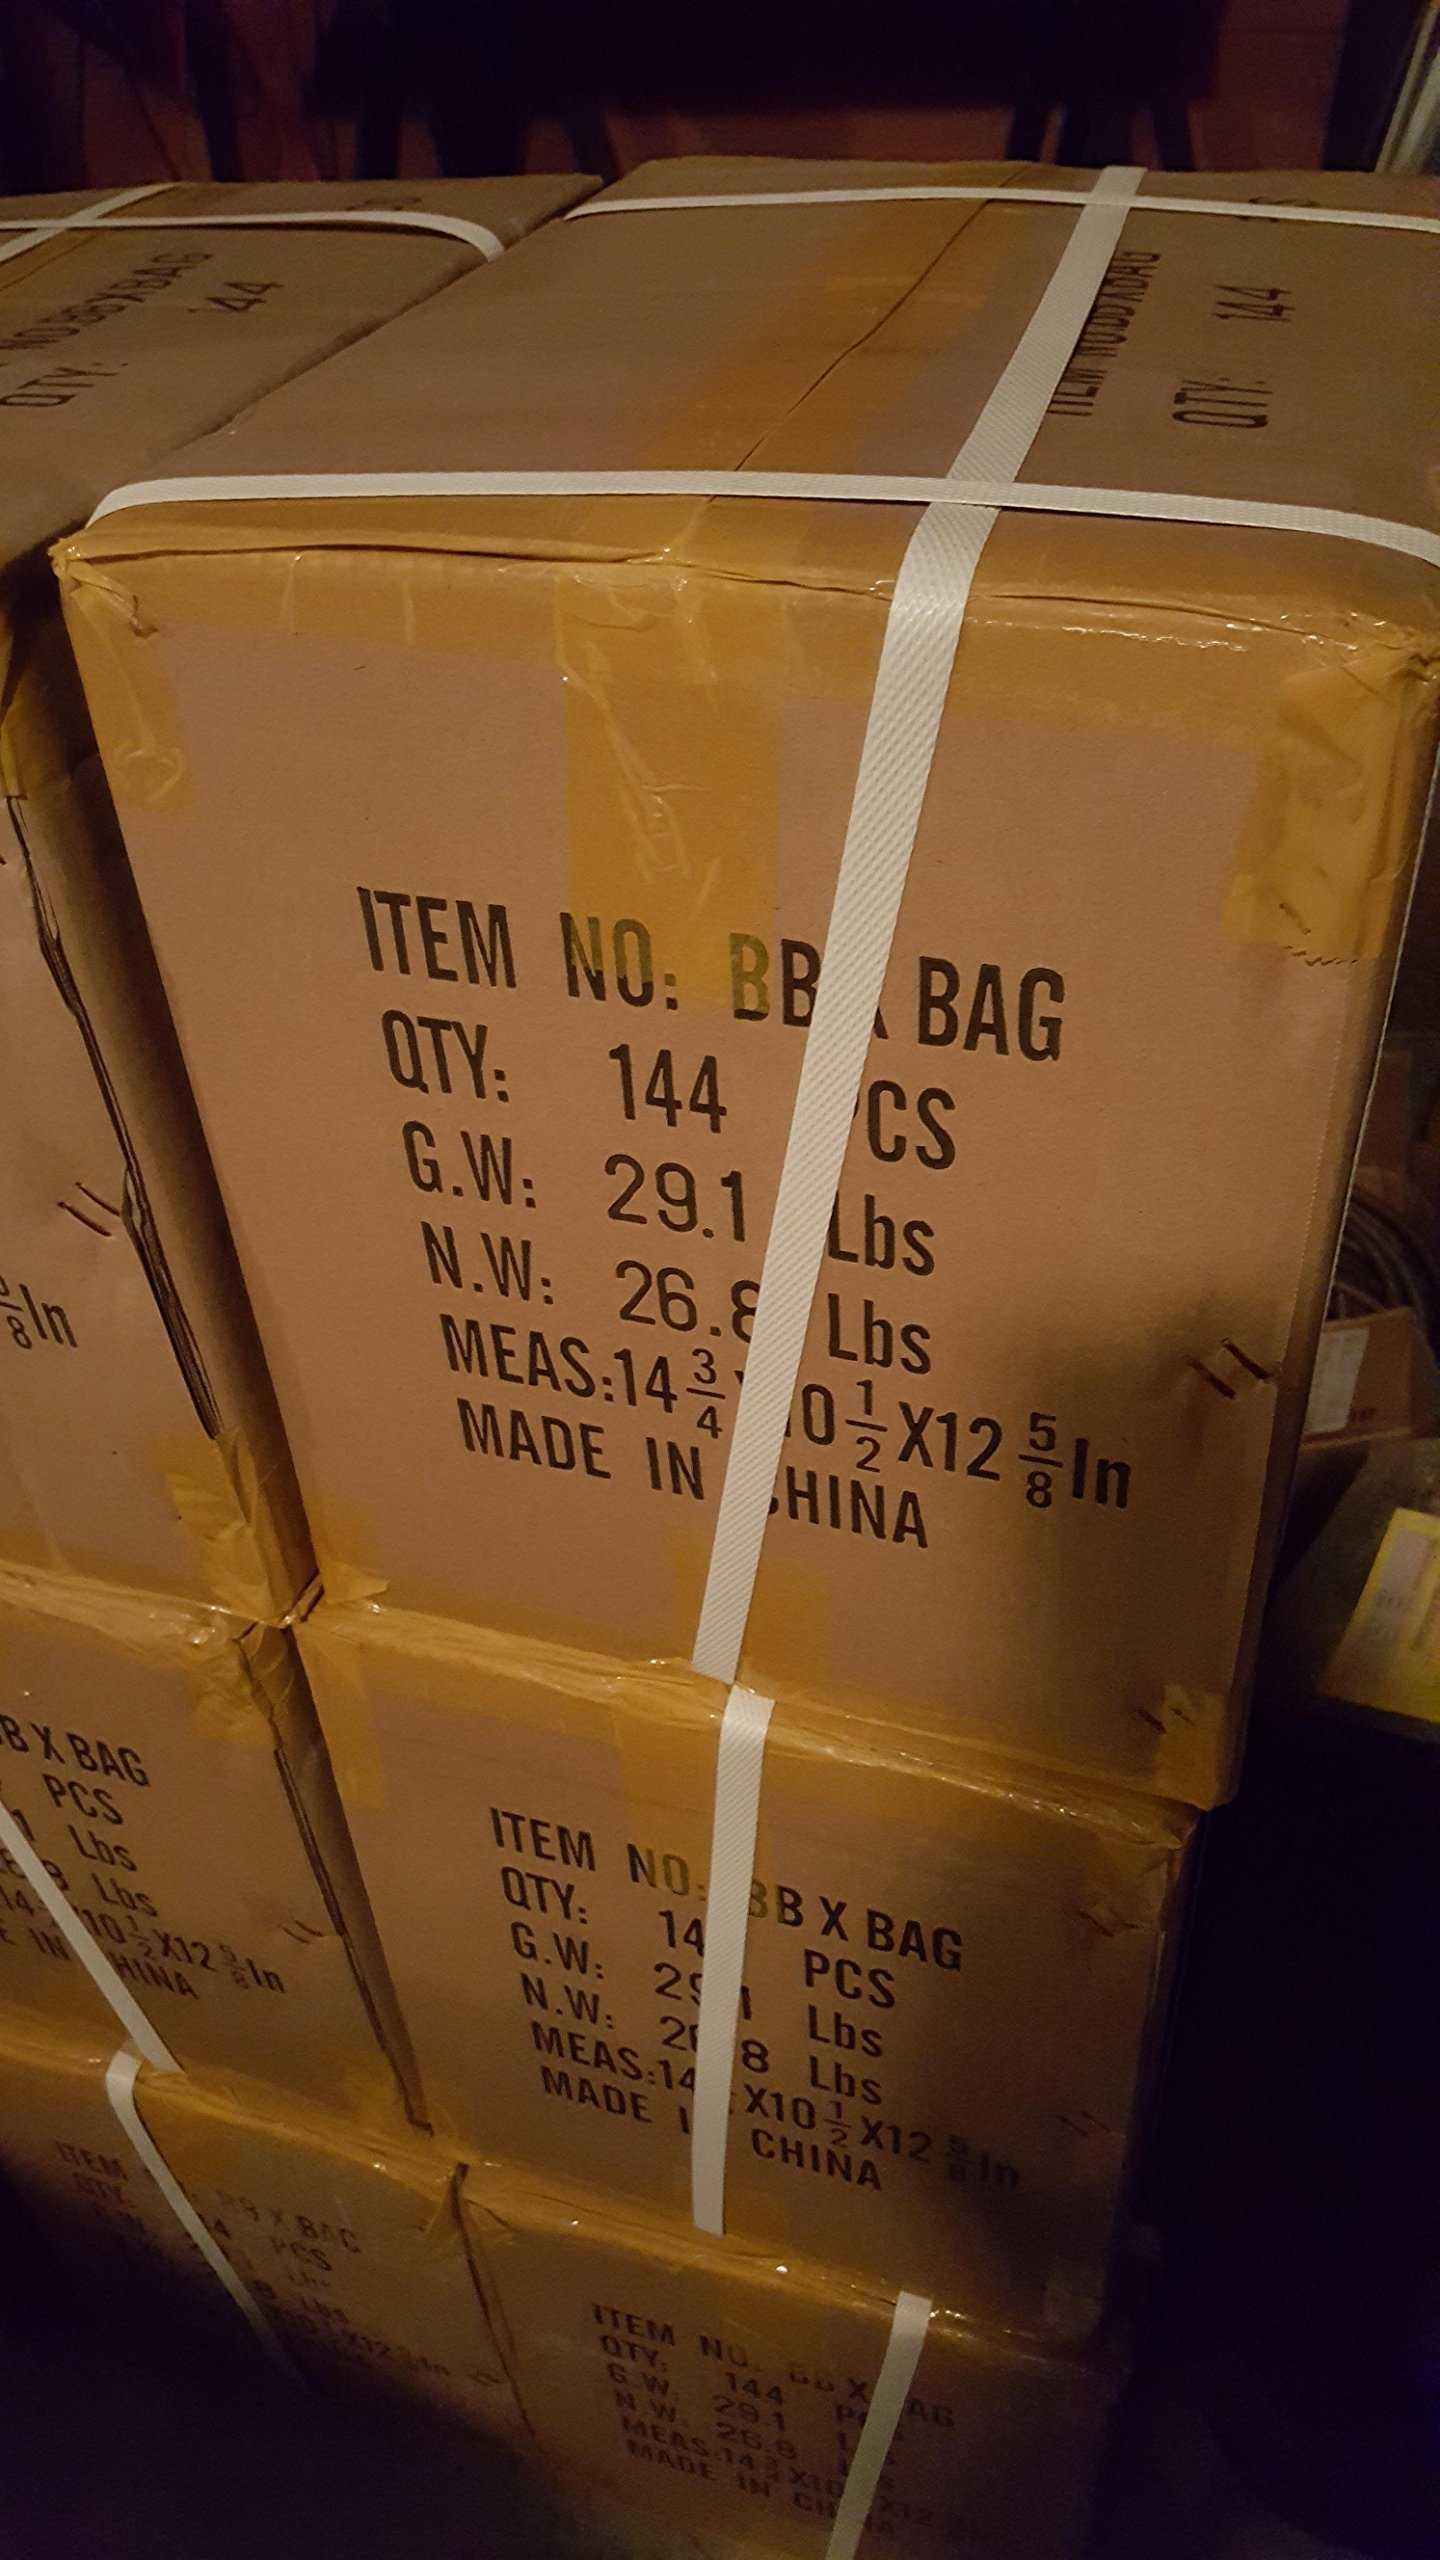 UKArms BBXBAG Full Case, 0.12g 6mm BBs, 850 Rounds per Polybag, 144 Polybags per Case, Mixed Colors, 122400 BBs Total